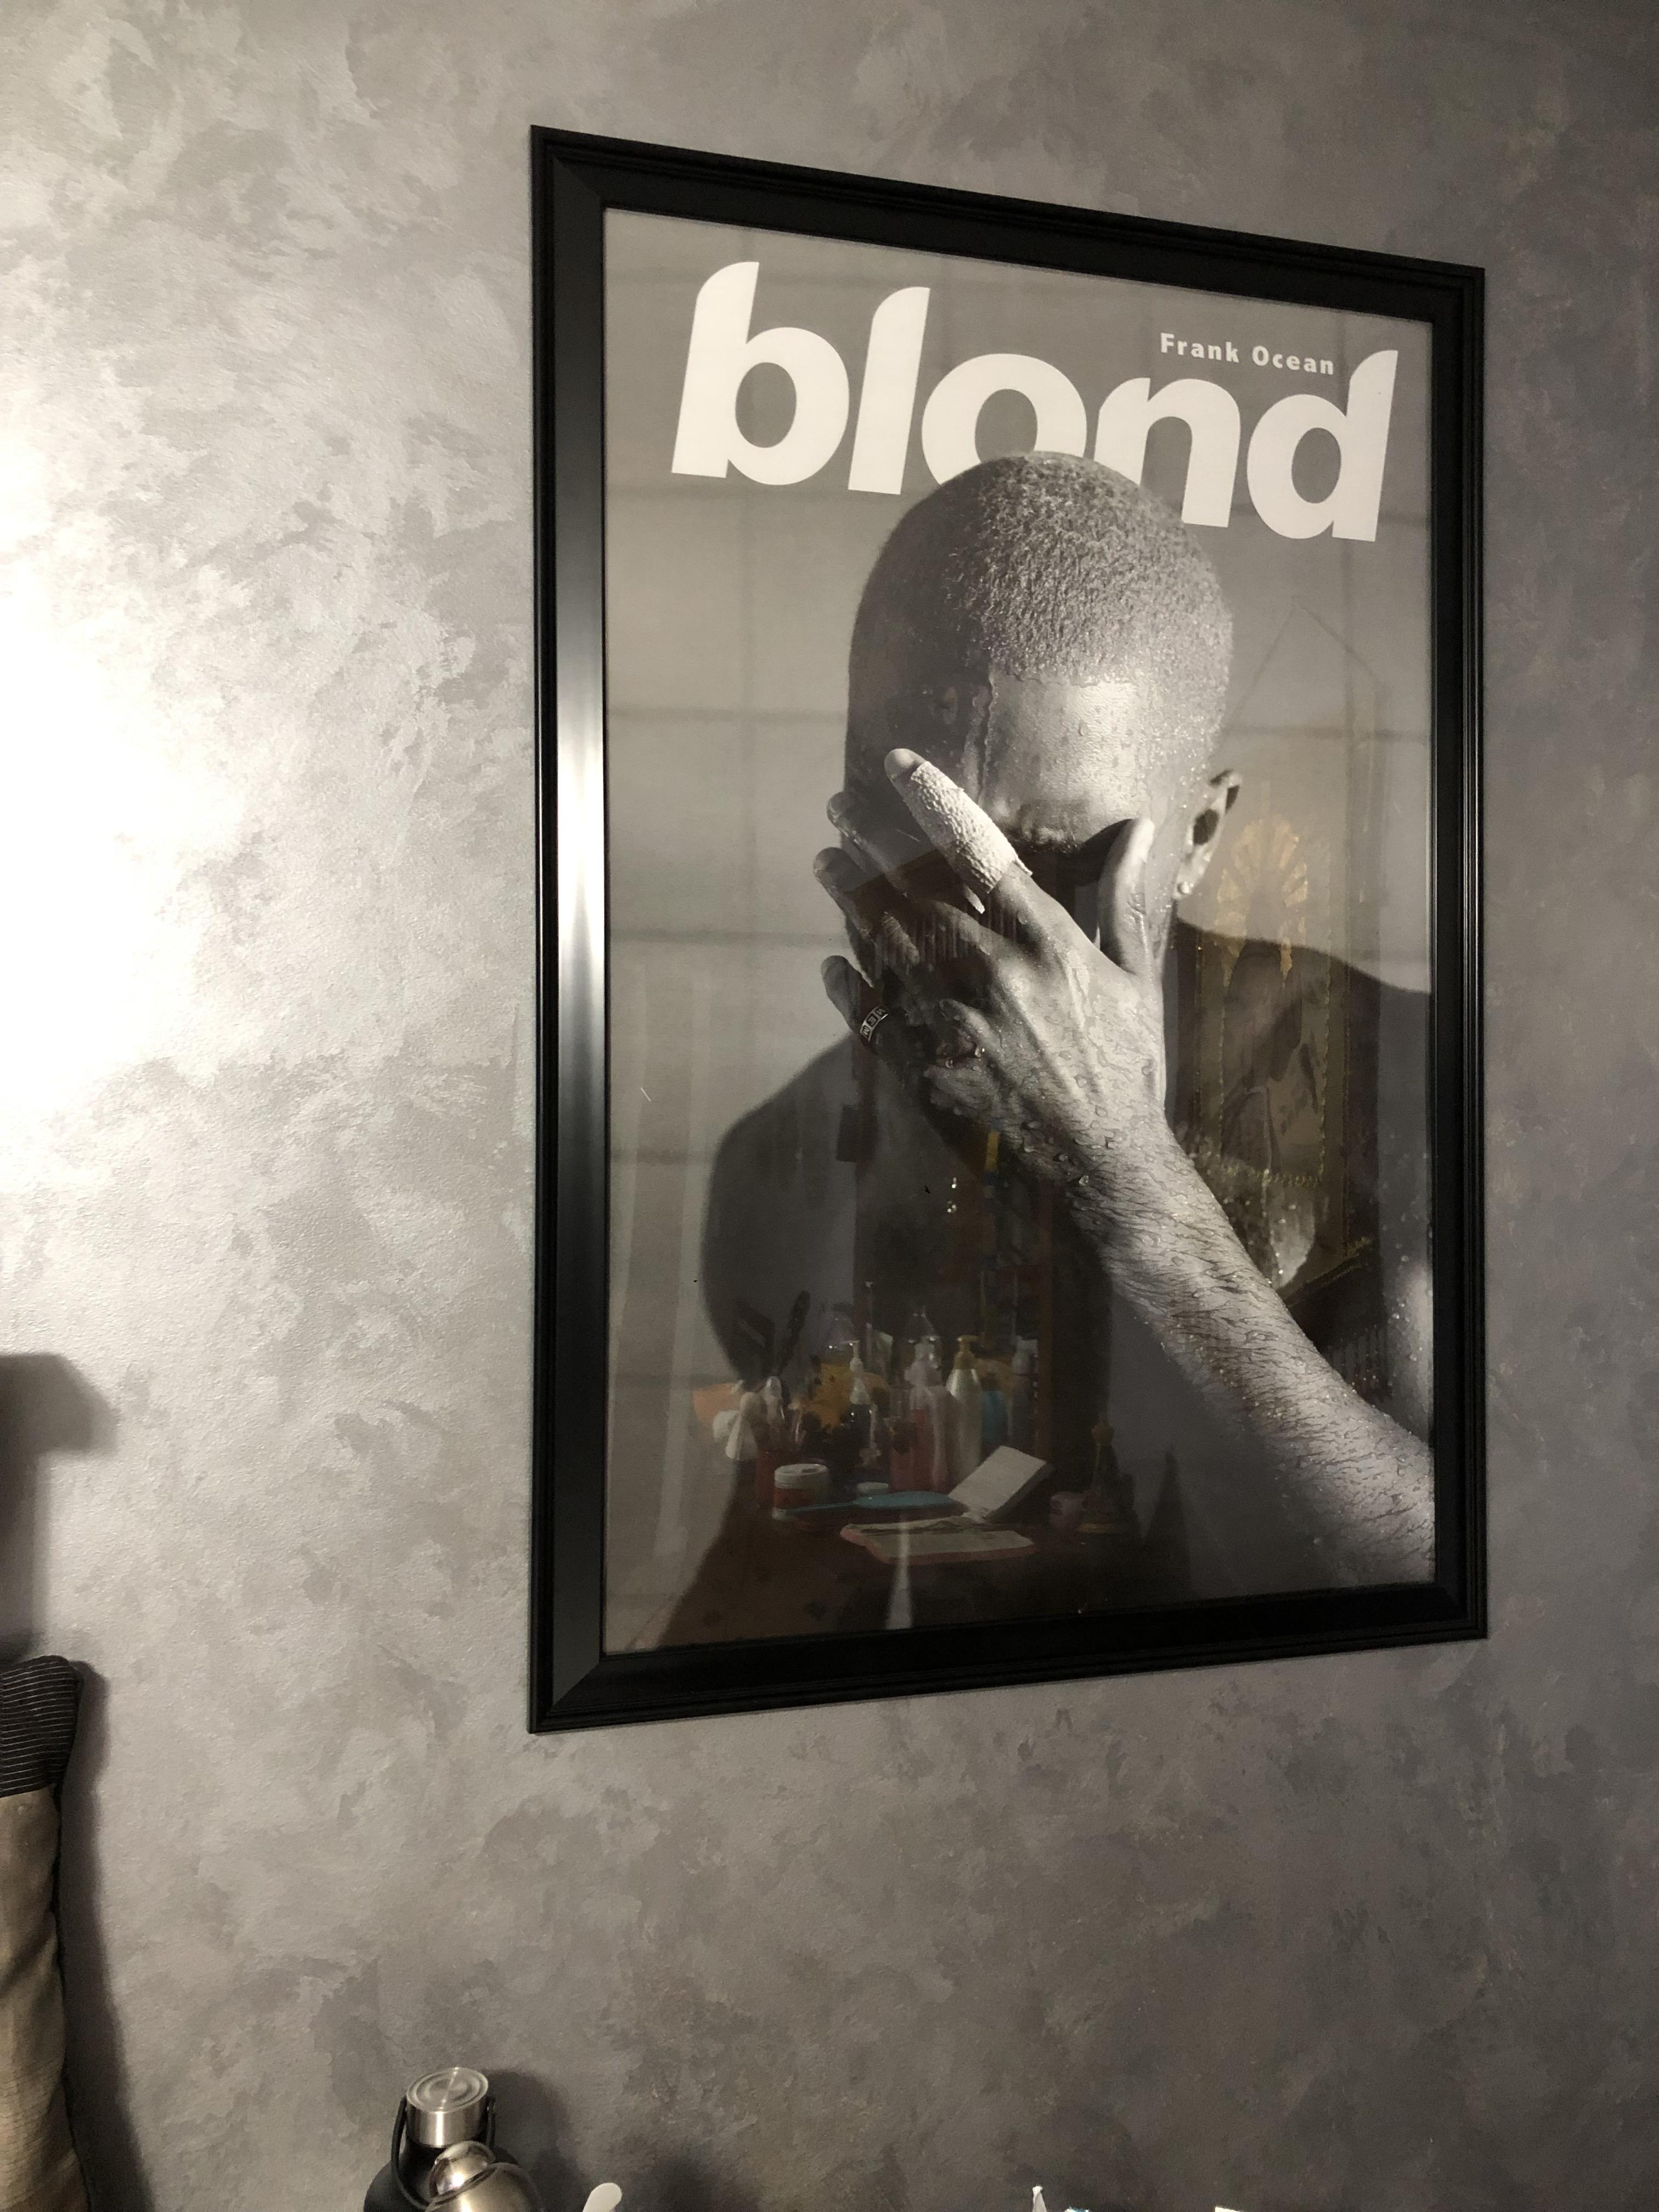 new poster i just put up in my room